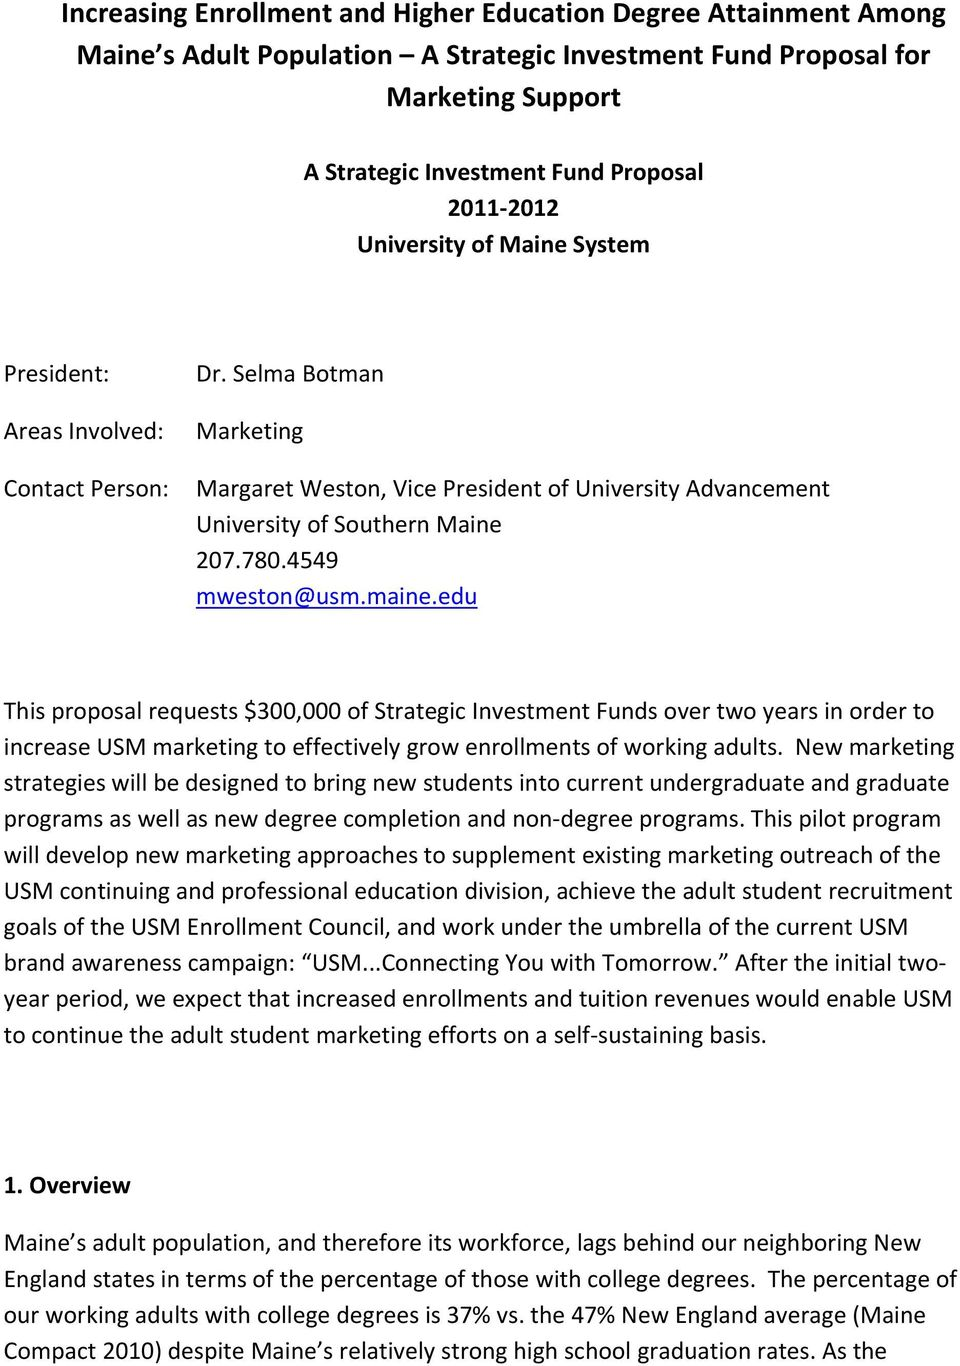 4549 mweston@usm.maine.edu This proposal requests $300,000 of Strategic Investment over two years in order to increase USM marketing to effectively grow enrollments of working adults.